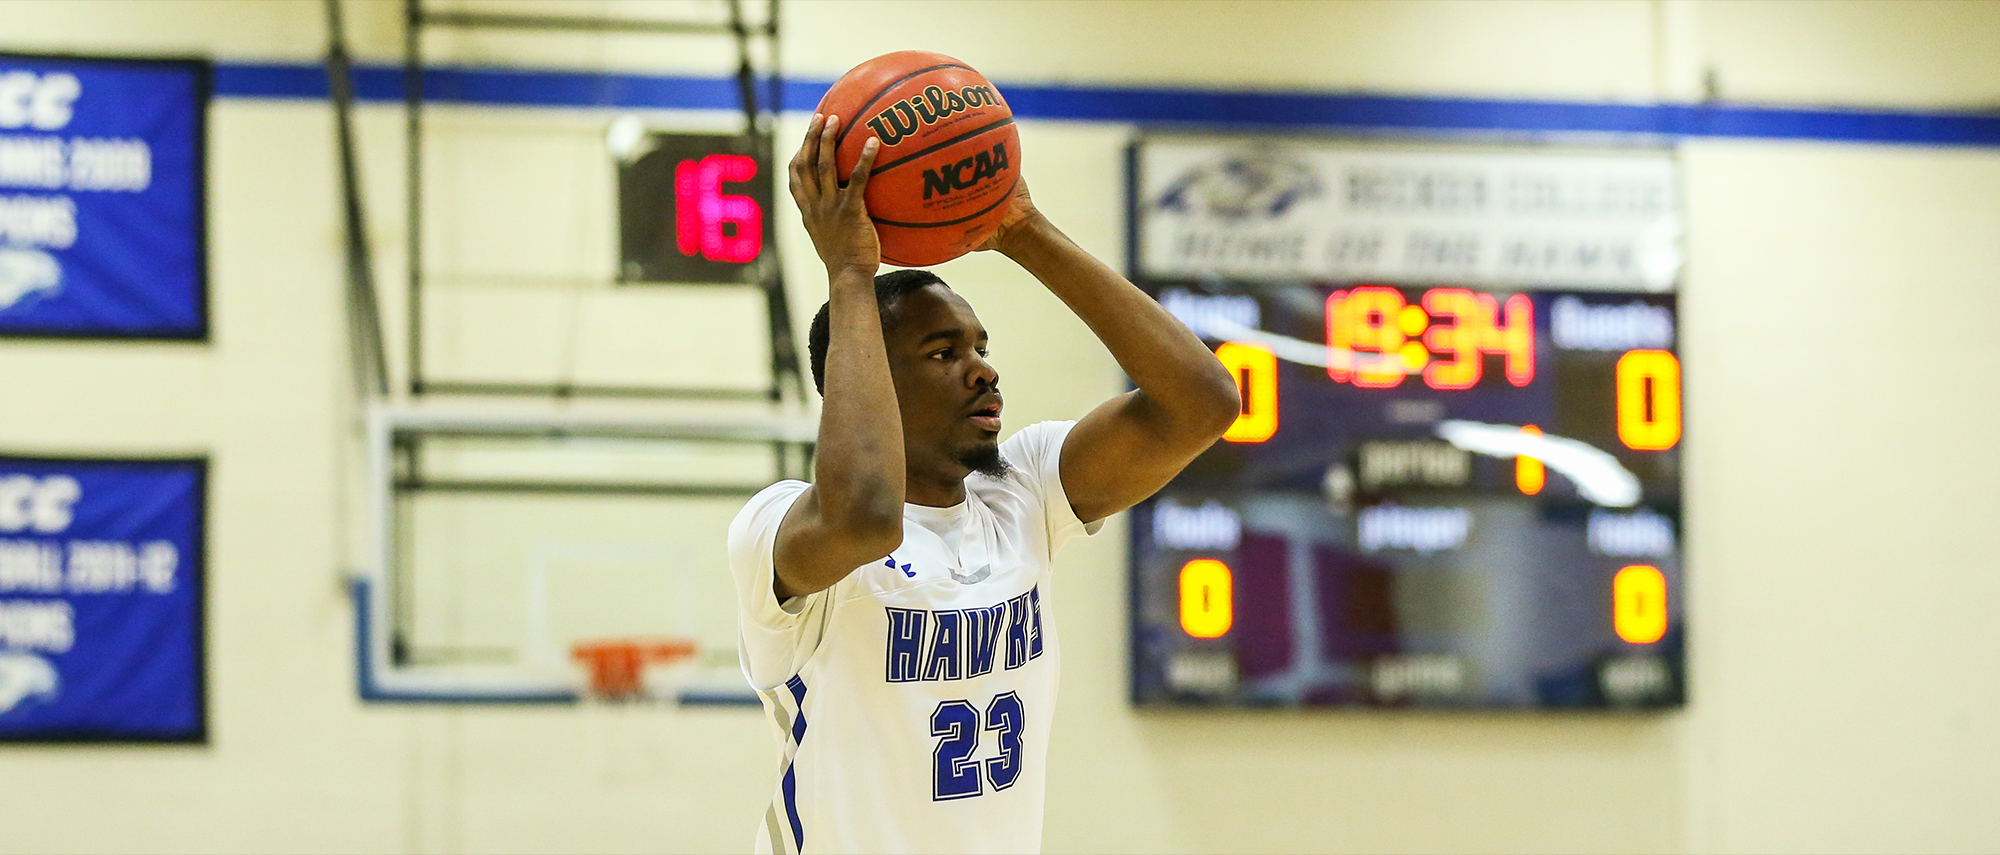 Jamir Carr - Men's Basketball